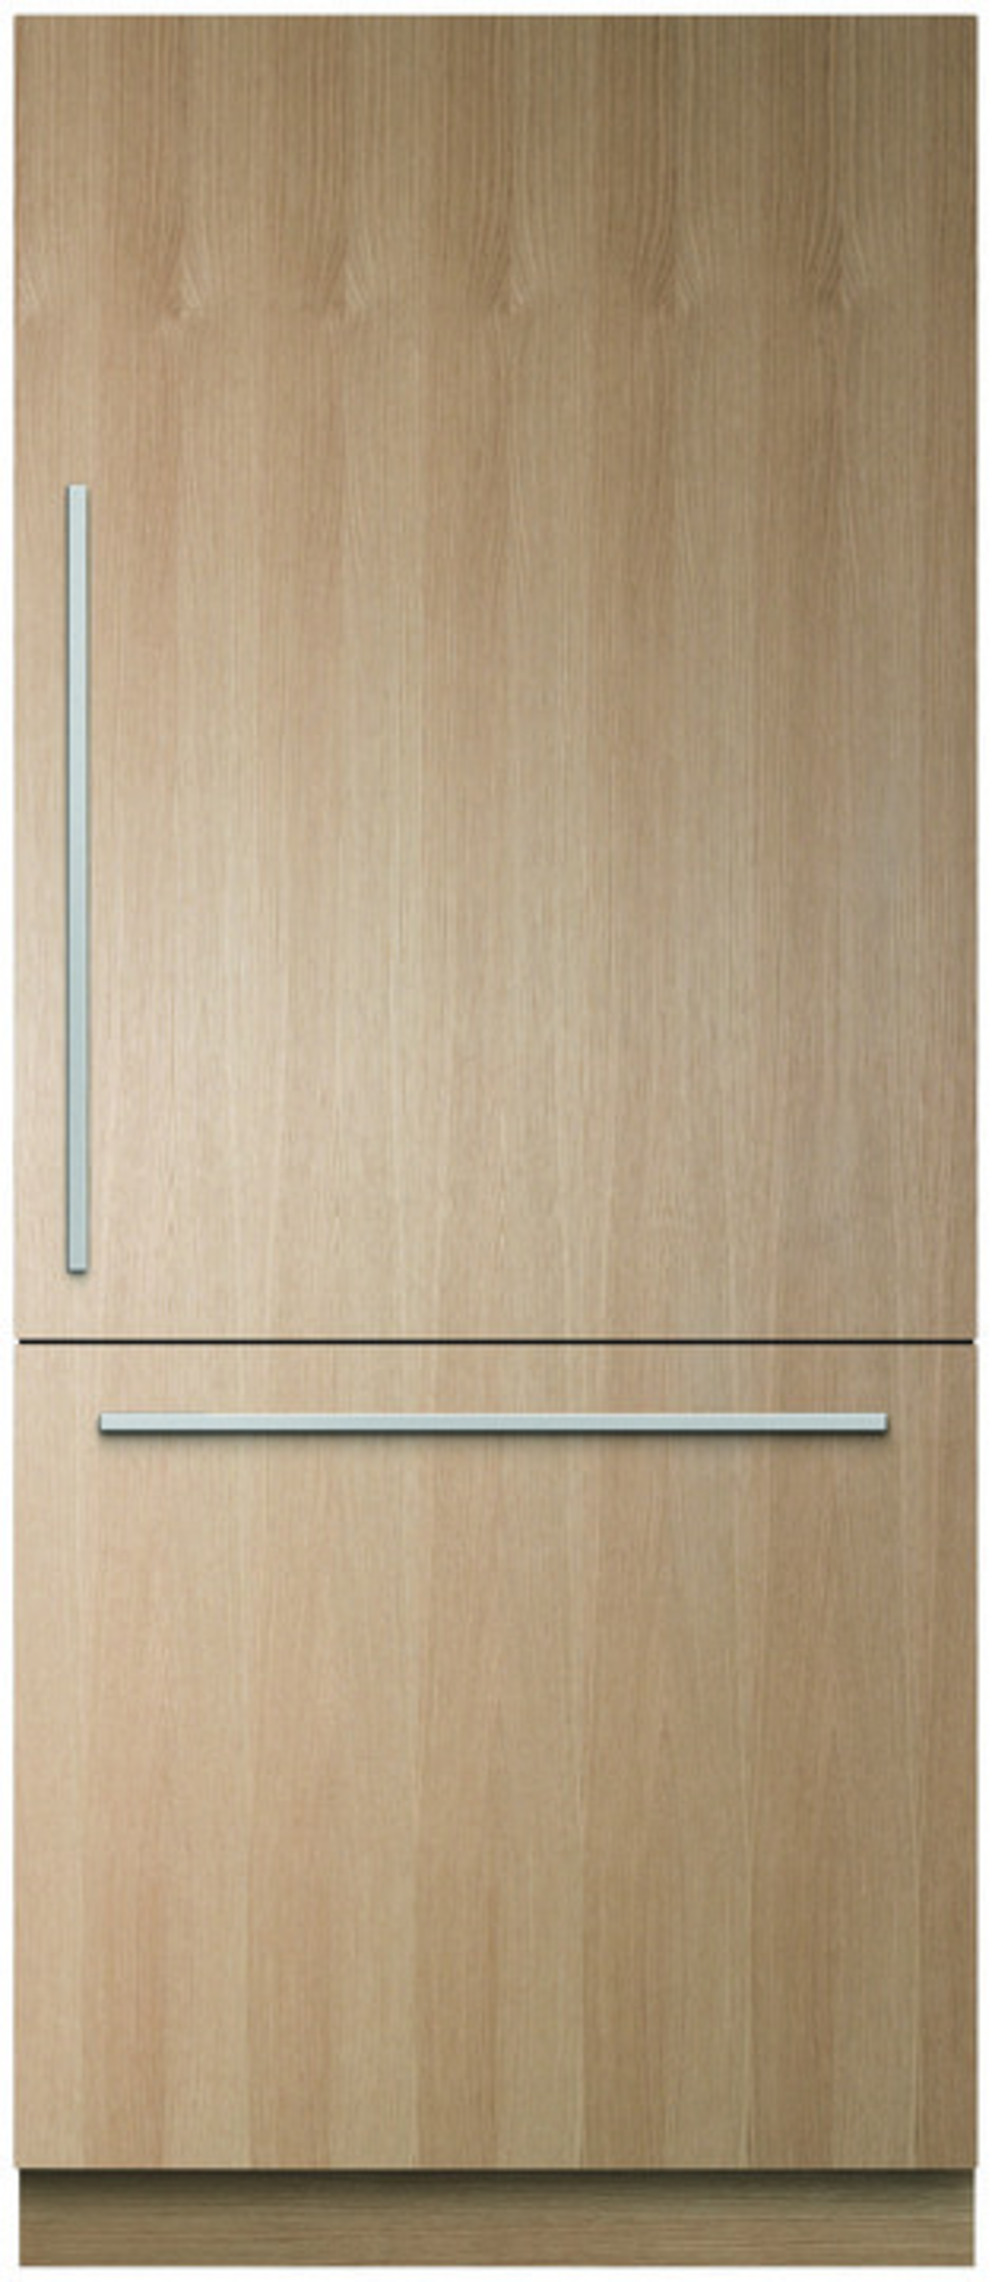 Réfrigérateurs Fisher&Paykel RS36W80RJ1